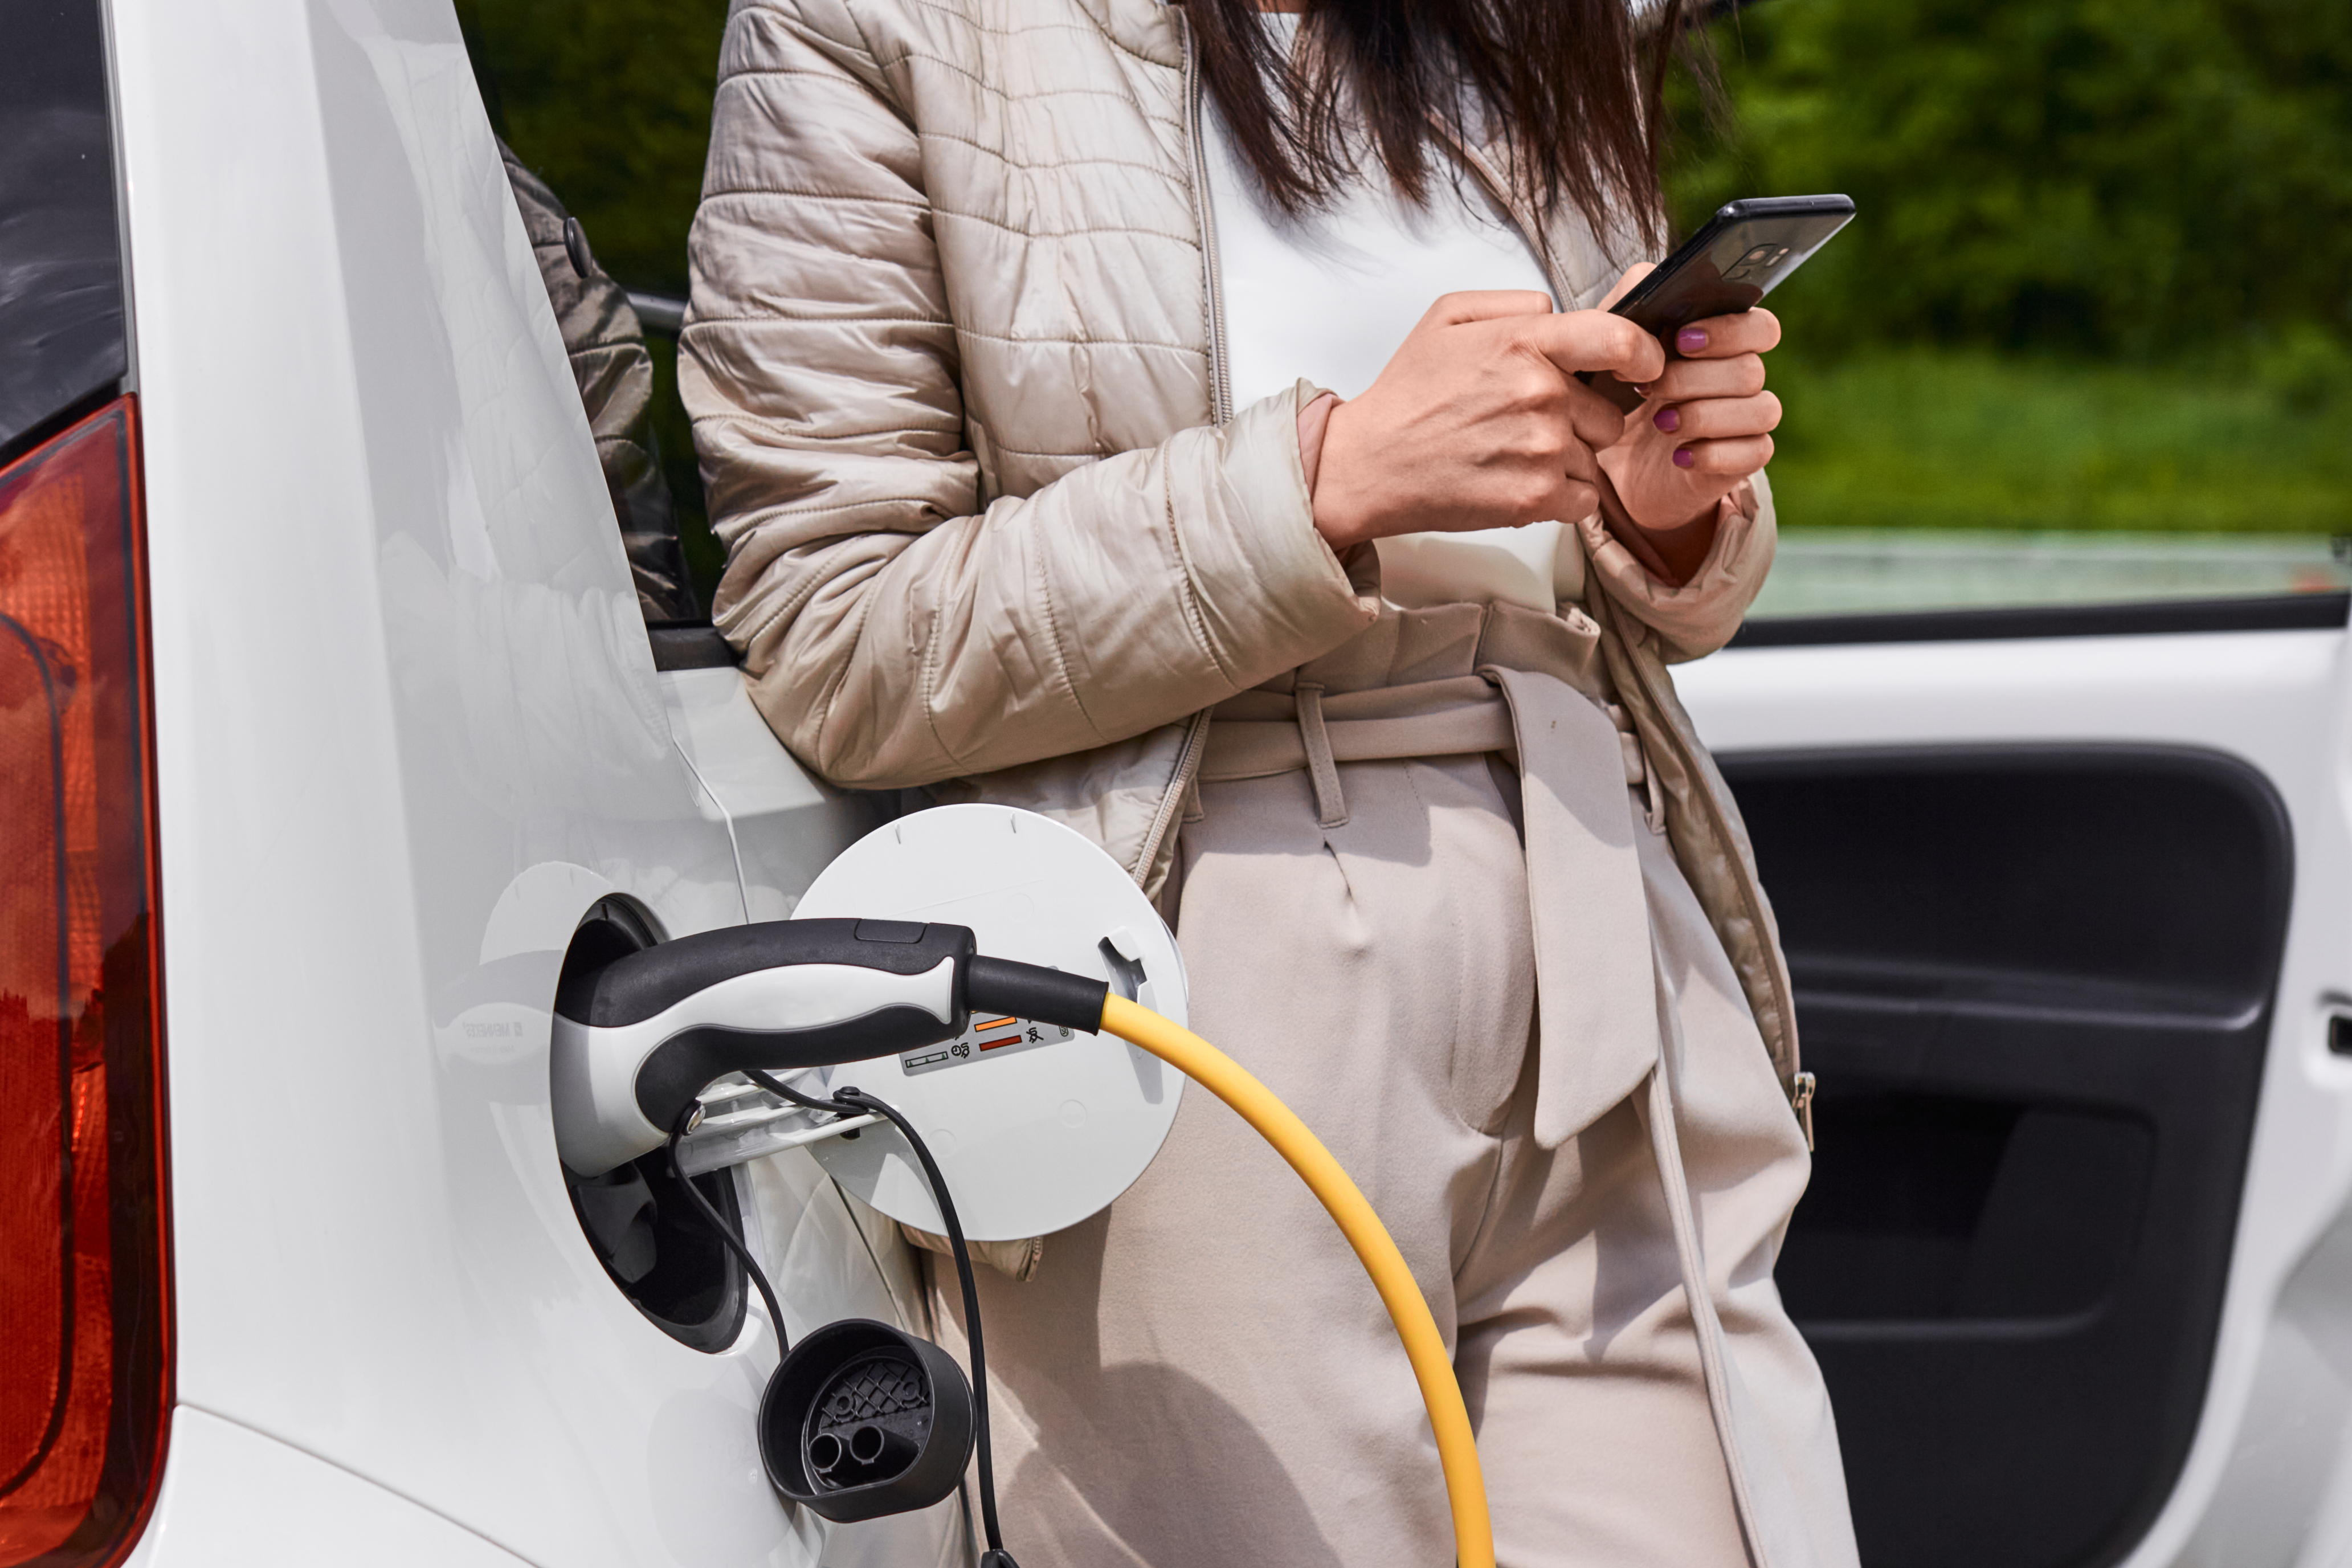 Young woman standing near the electric car with mobile phone in her hand and waiting for recharging of the automobile battery.